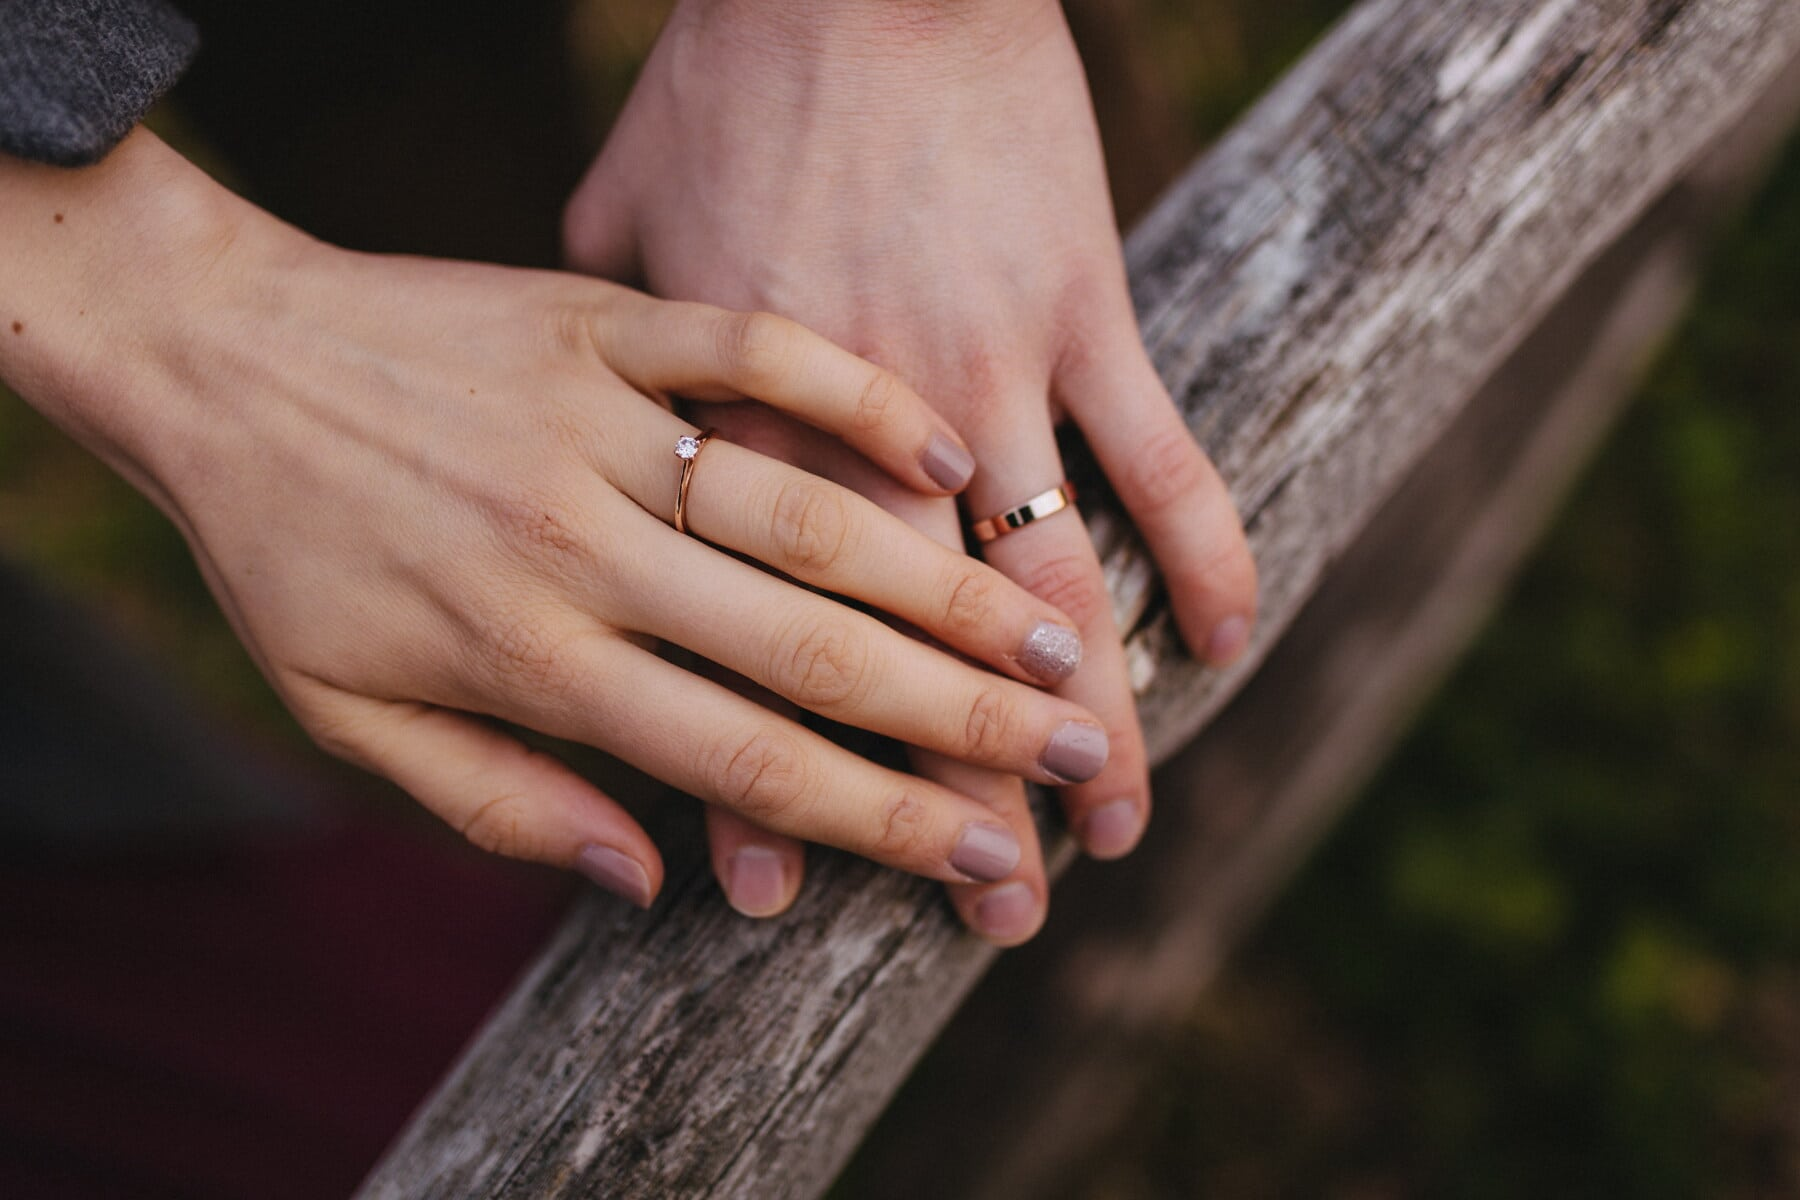 gold, rings, girlfriend, holding hands, boyfriend, passion, touch, finger, emotion, trust